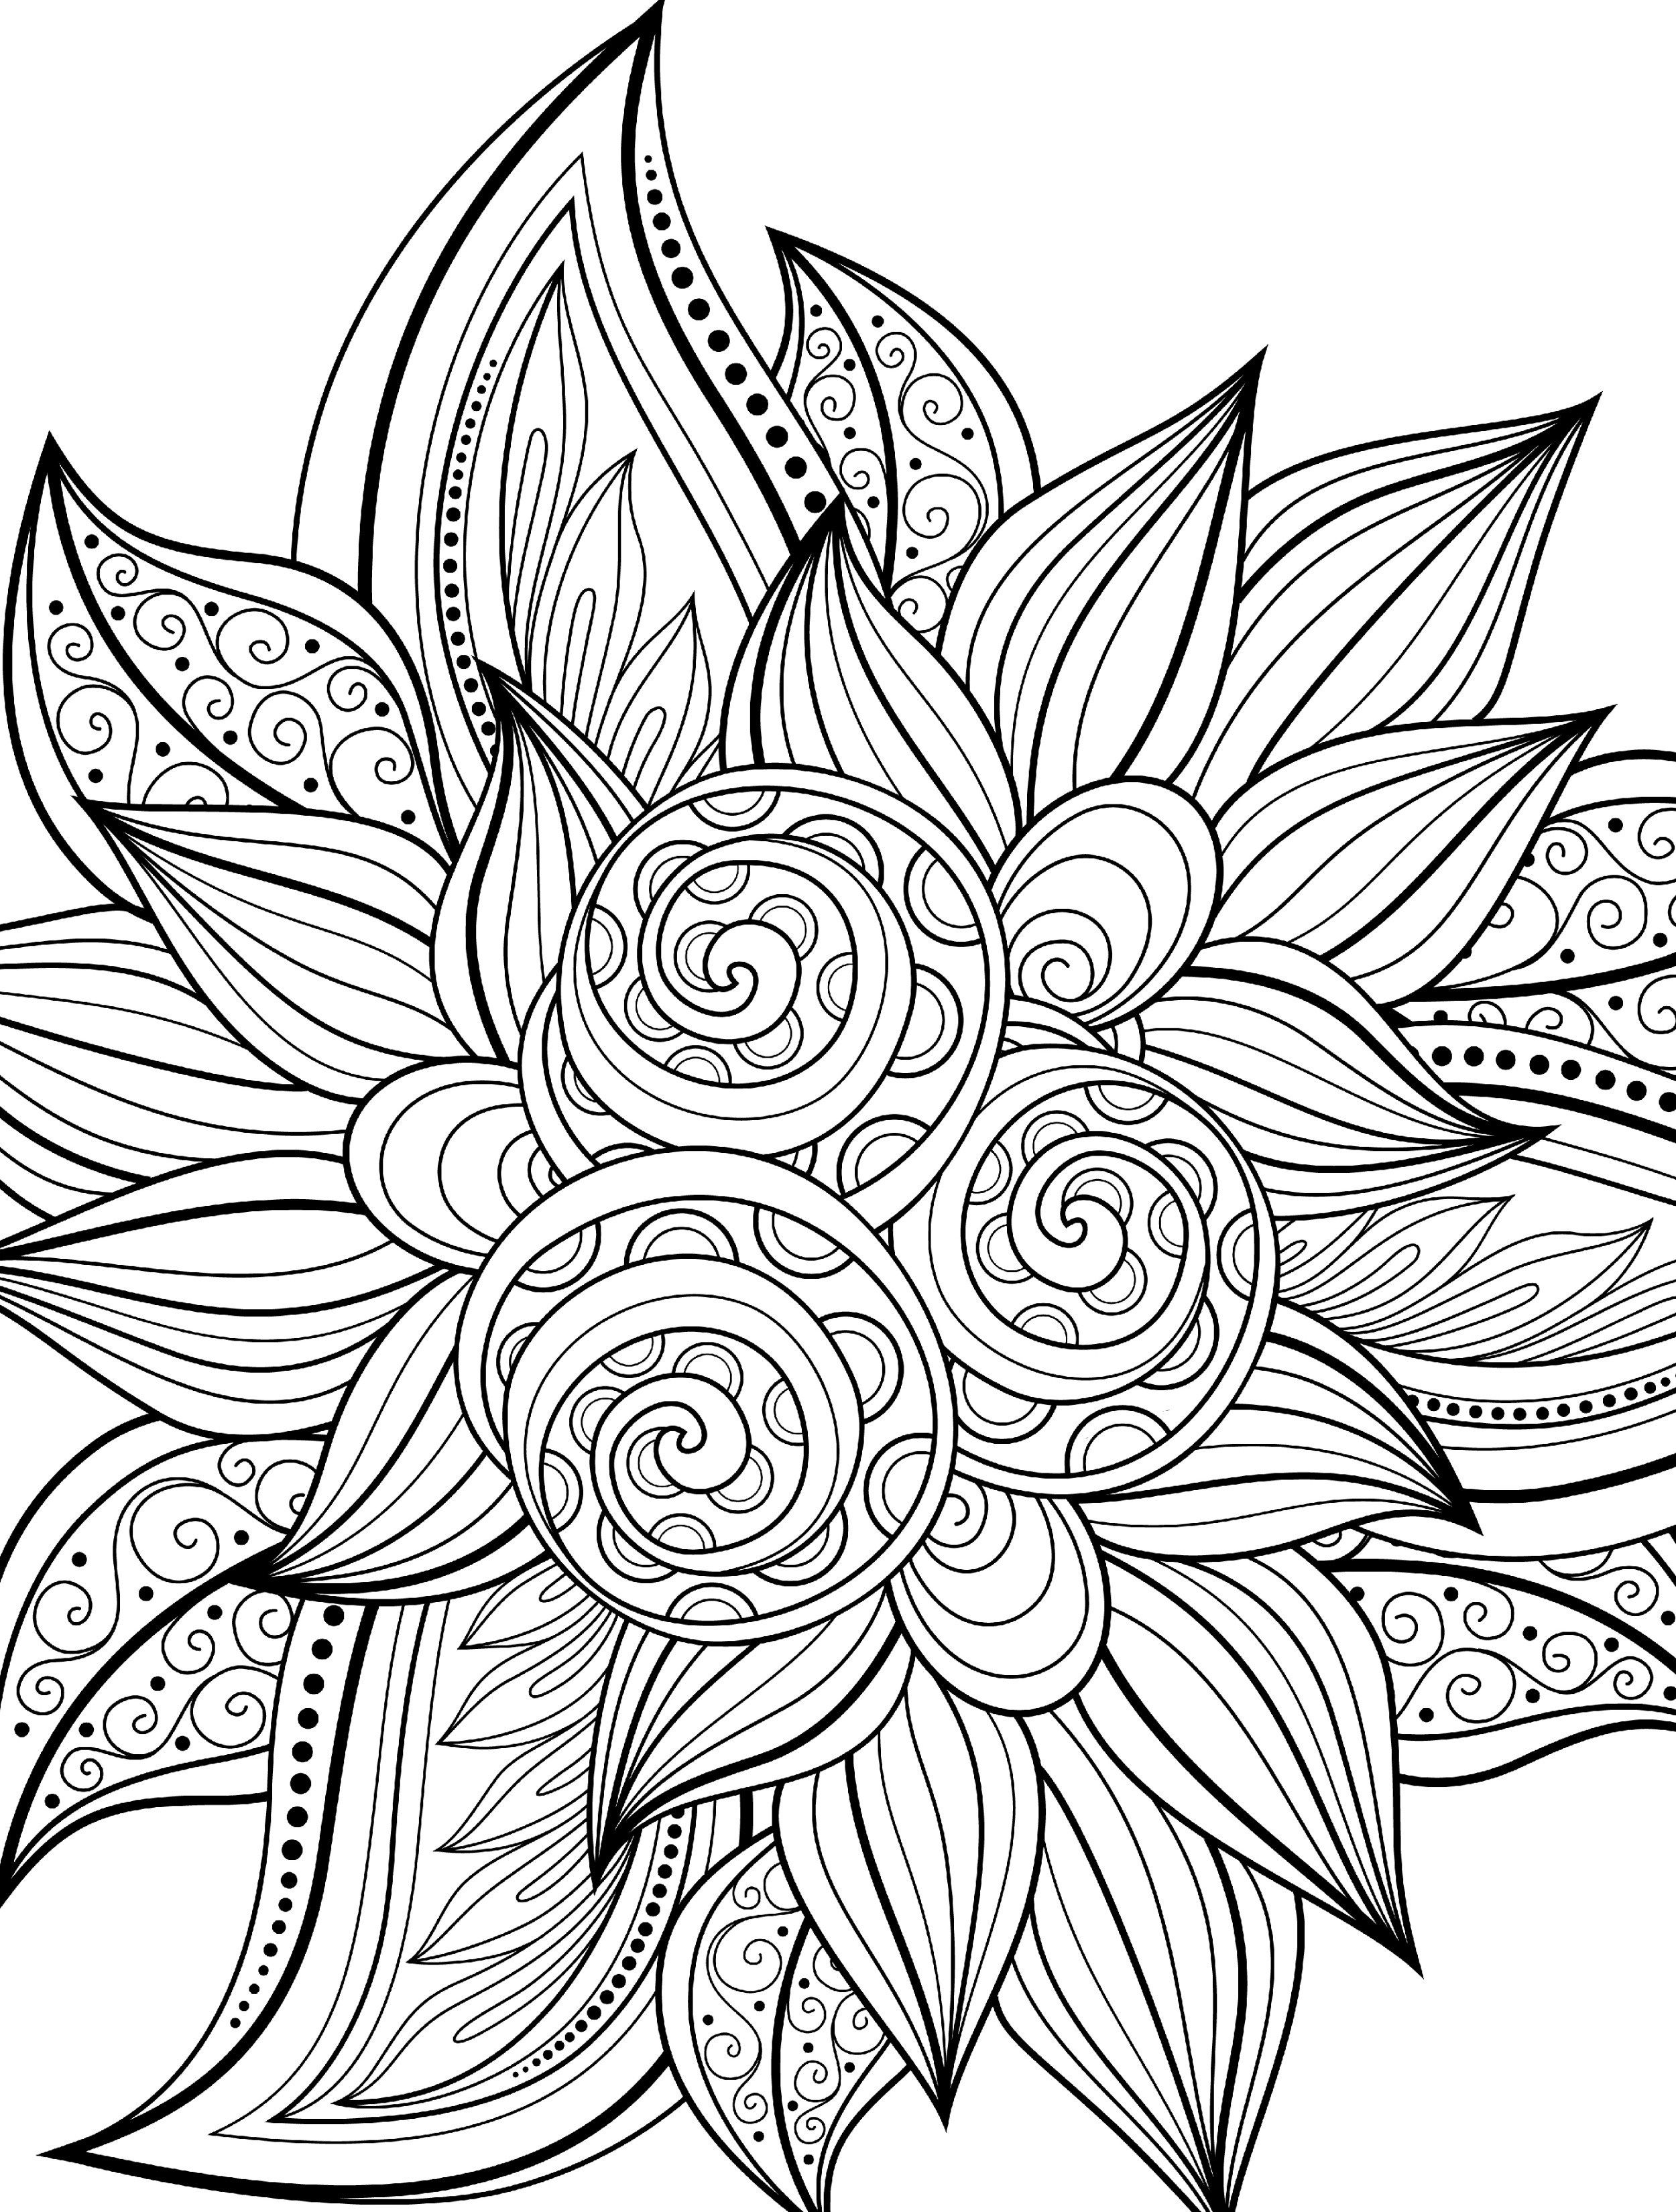 Free mandala coloring pages to print - 10 Free Printable Holiday Adult Coloring Pages